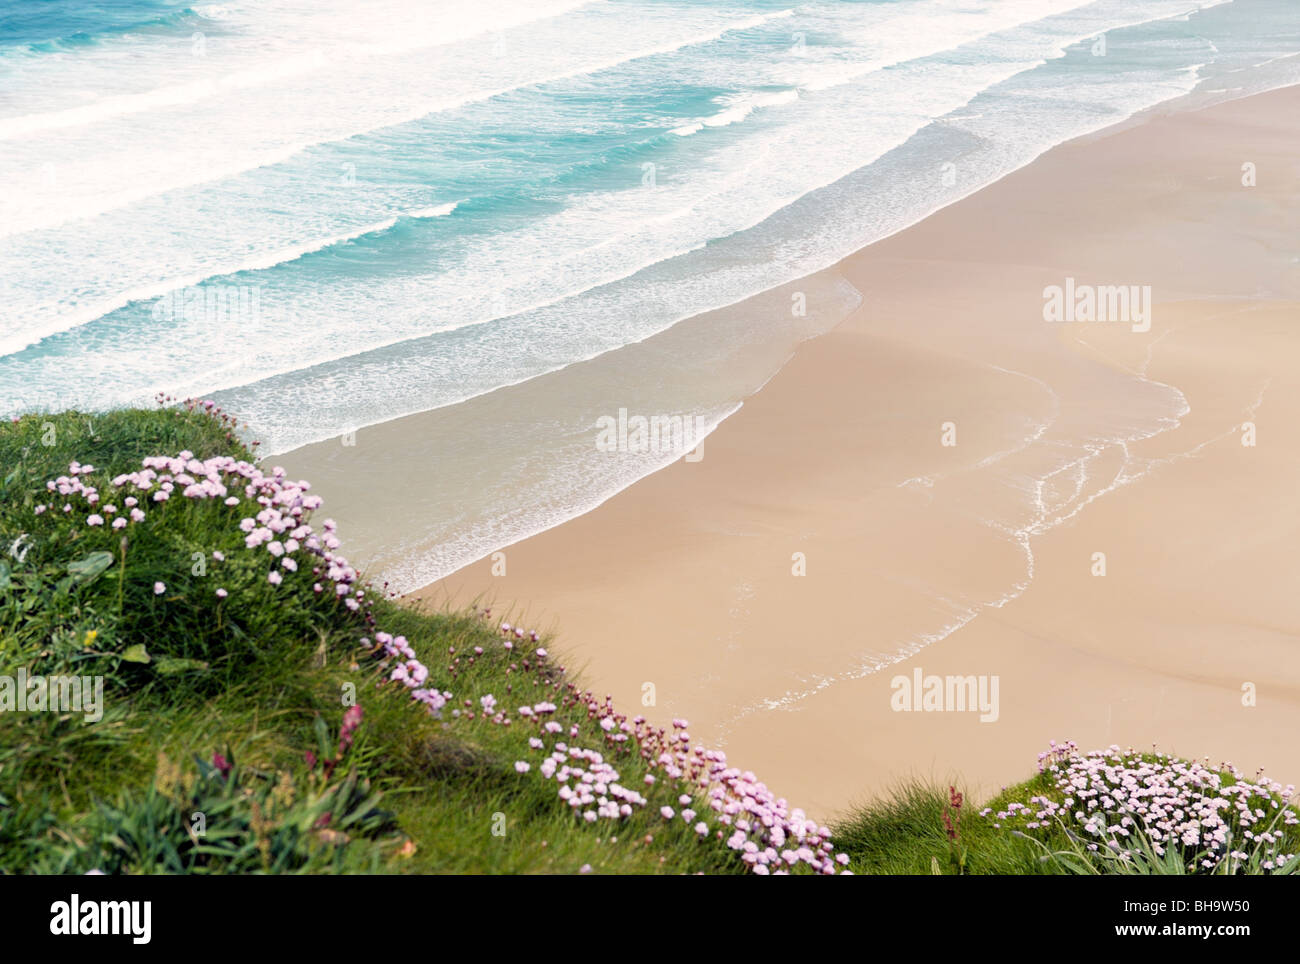 Waves roll onto clean deserted empty sandy summer beach from above. Sea pinks flowers in foreground. - Stock Image